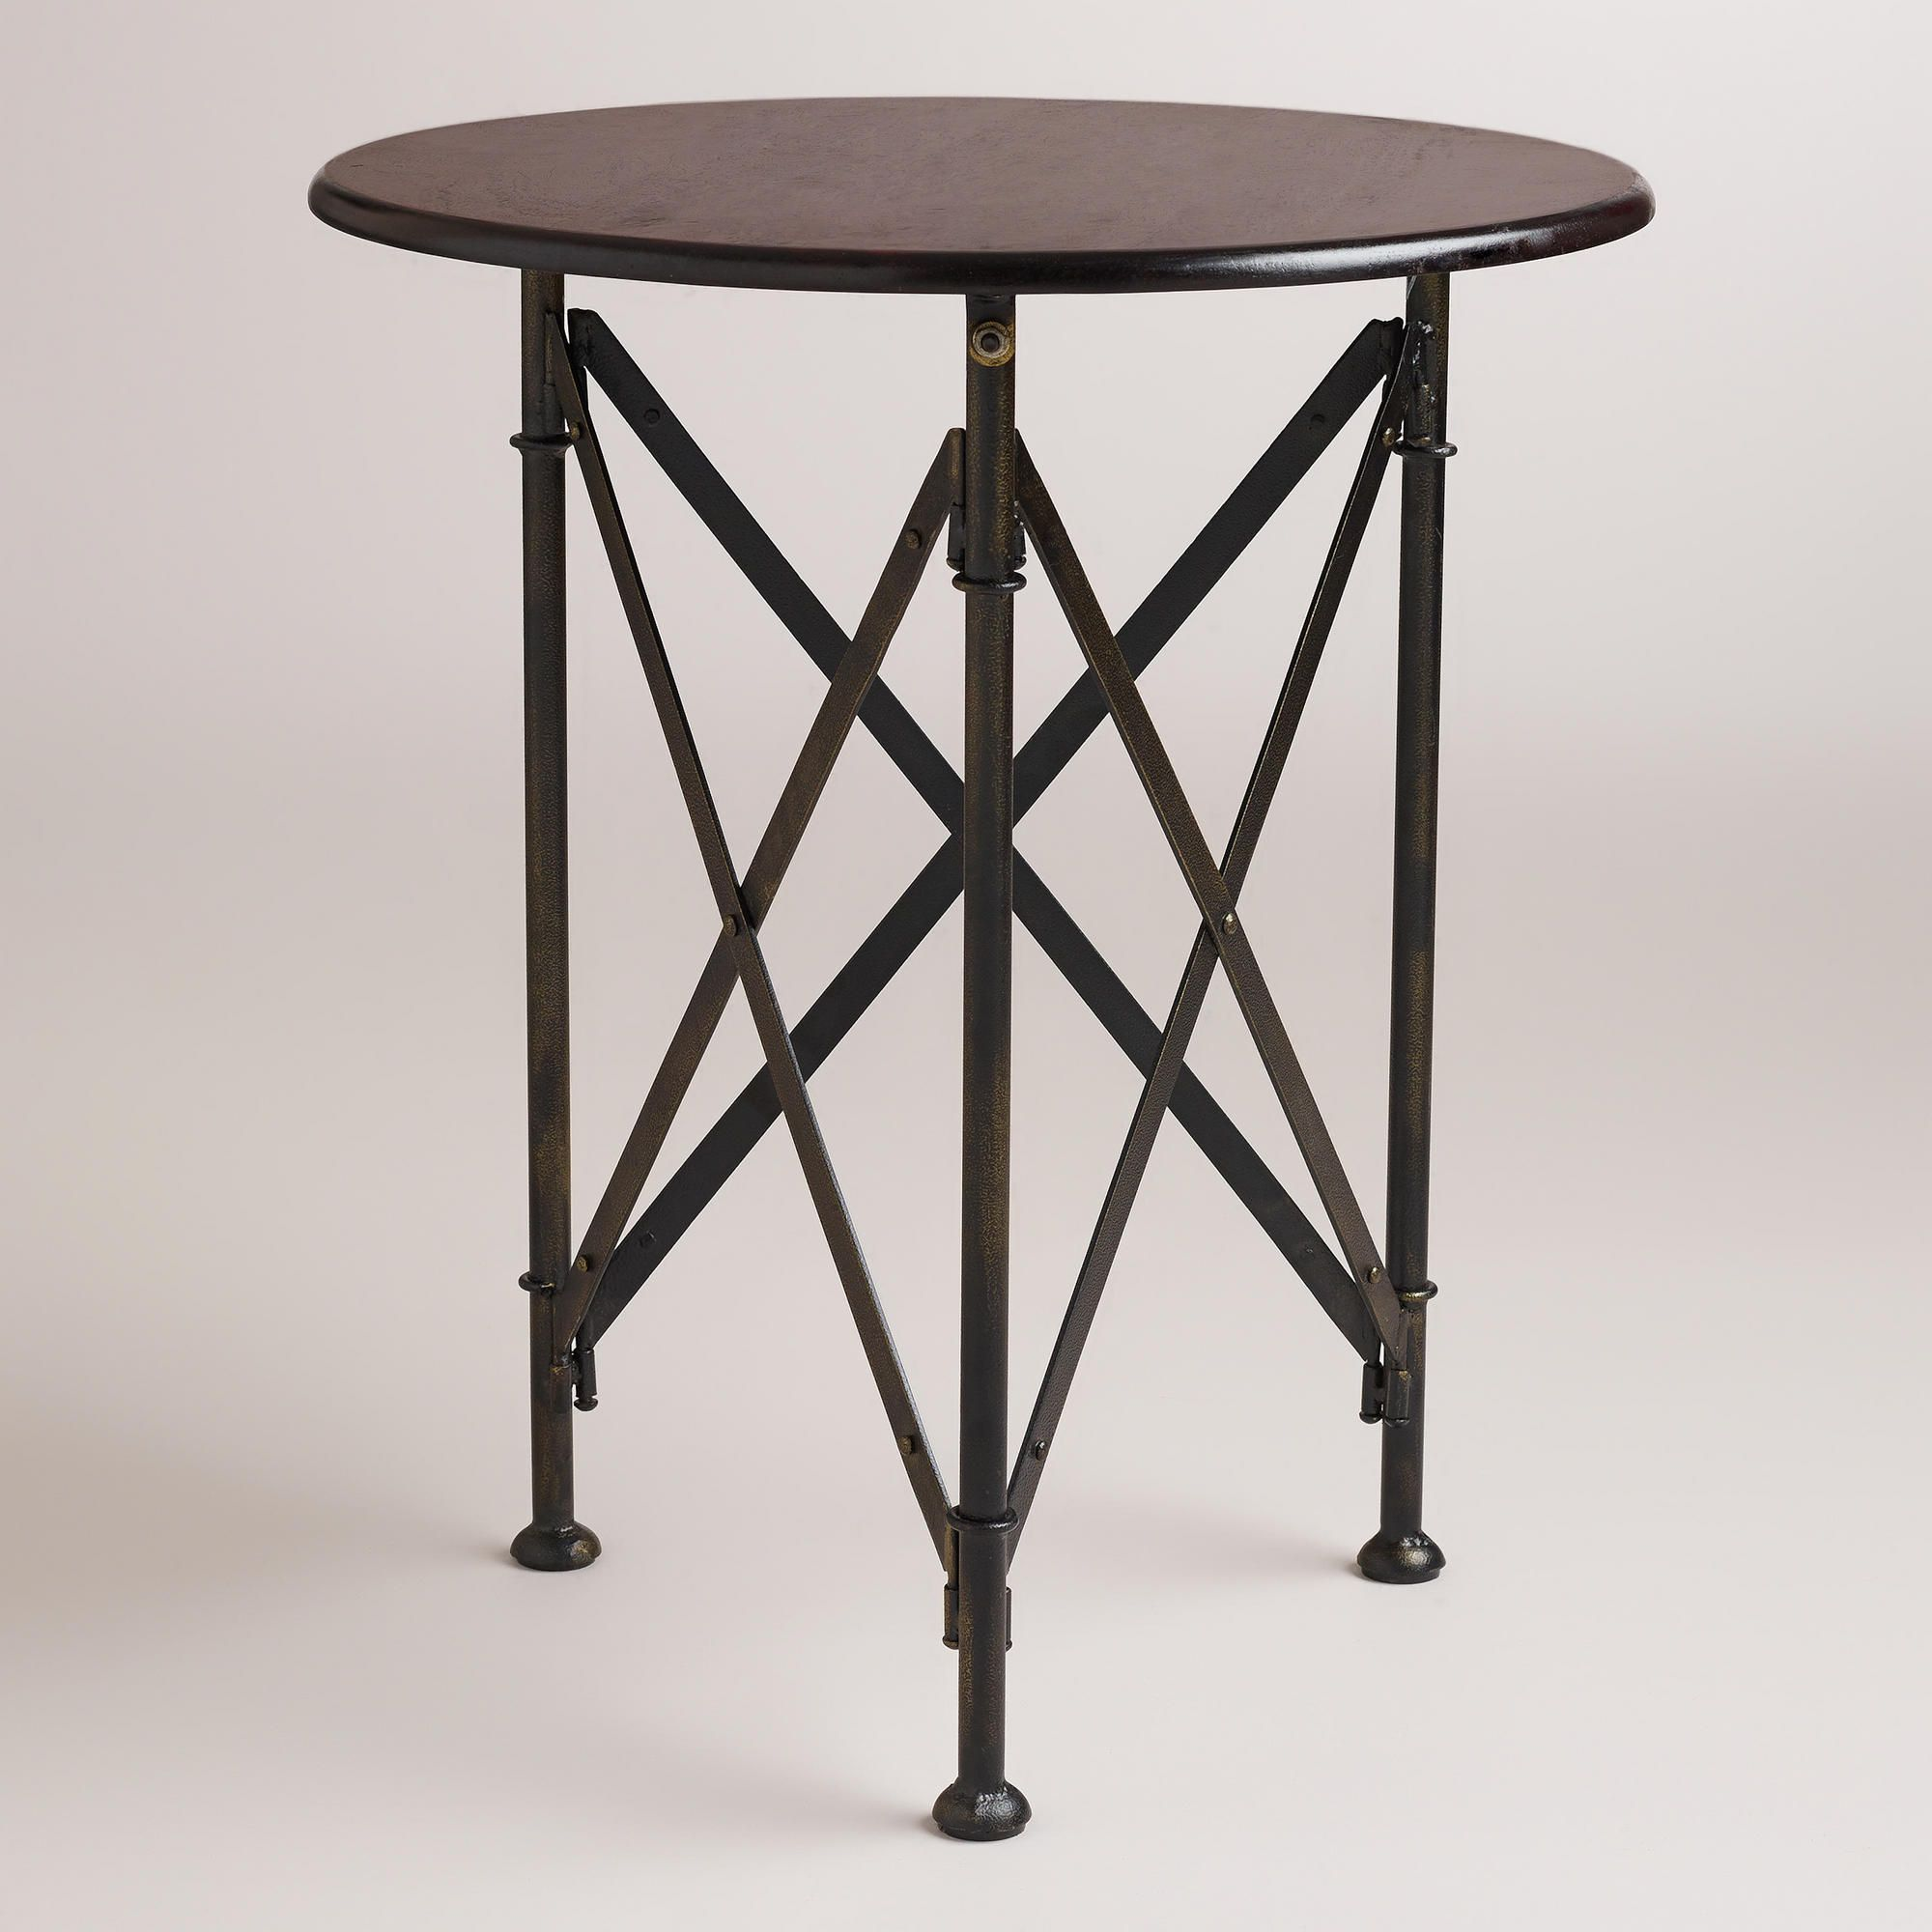 walker campaign accent table world market these are the accordion legs was talking about dining room placemats real marble bistro furniture entry mat pool bunnings brown linen